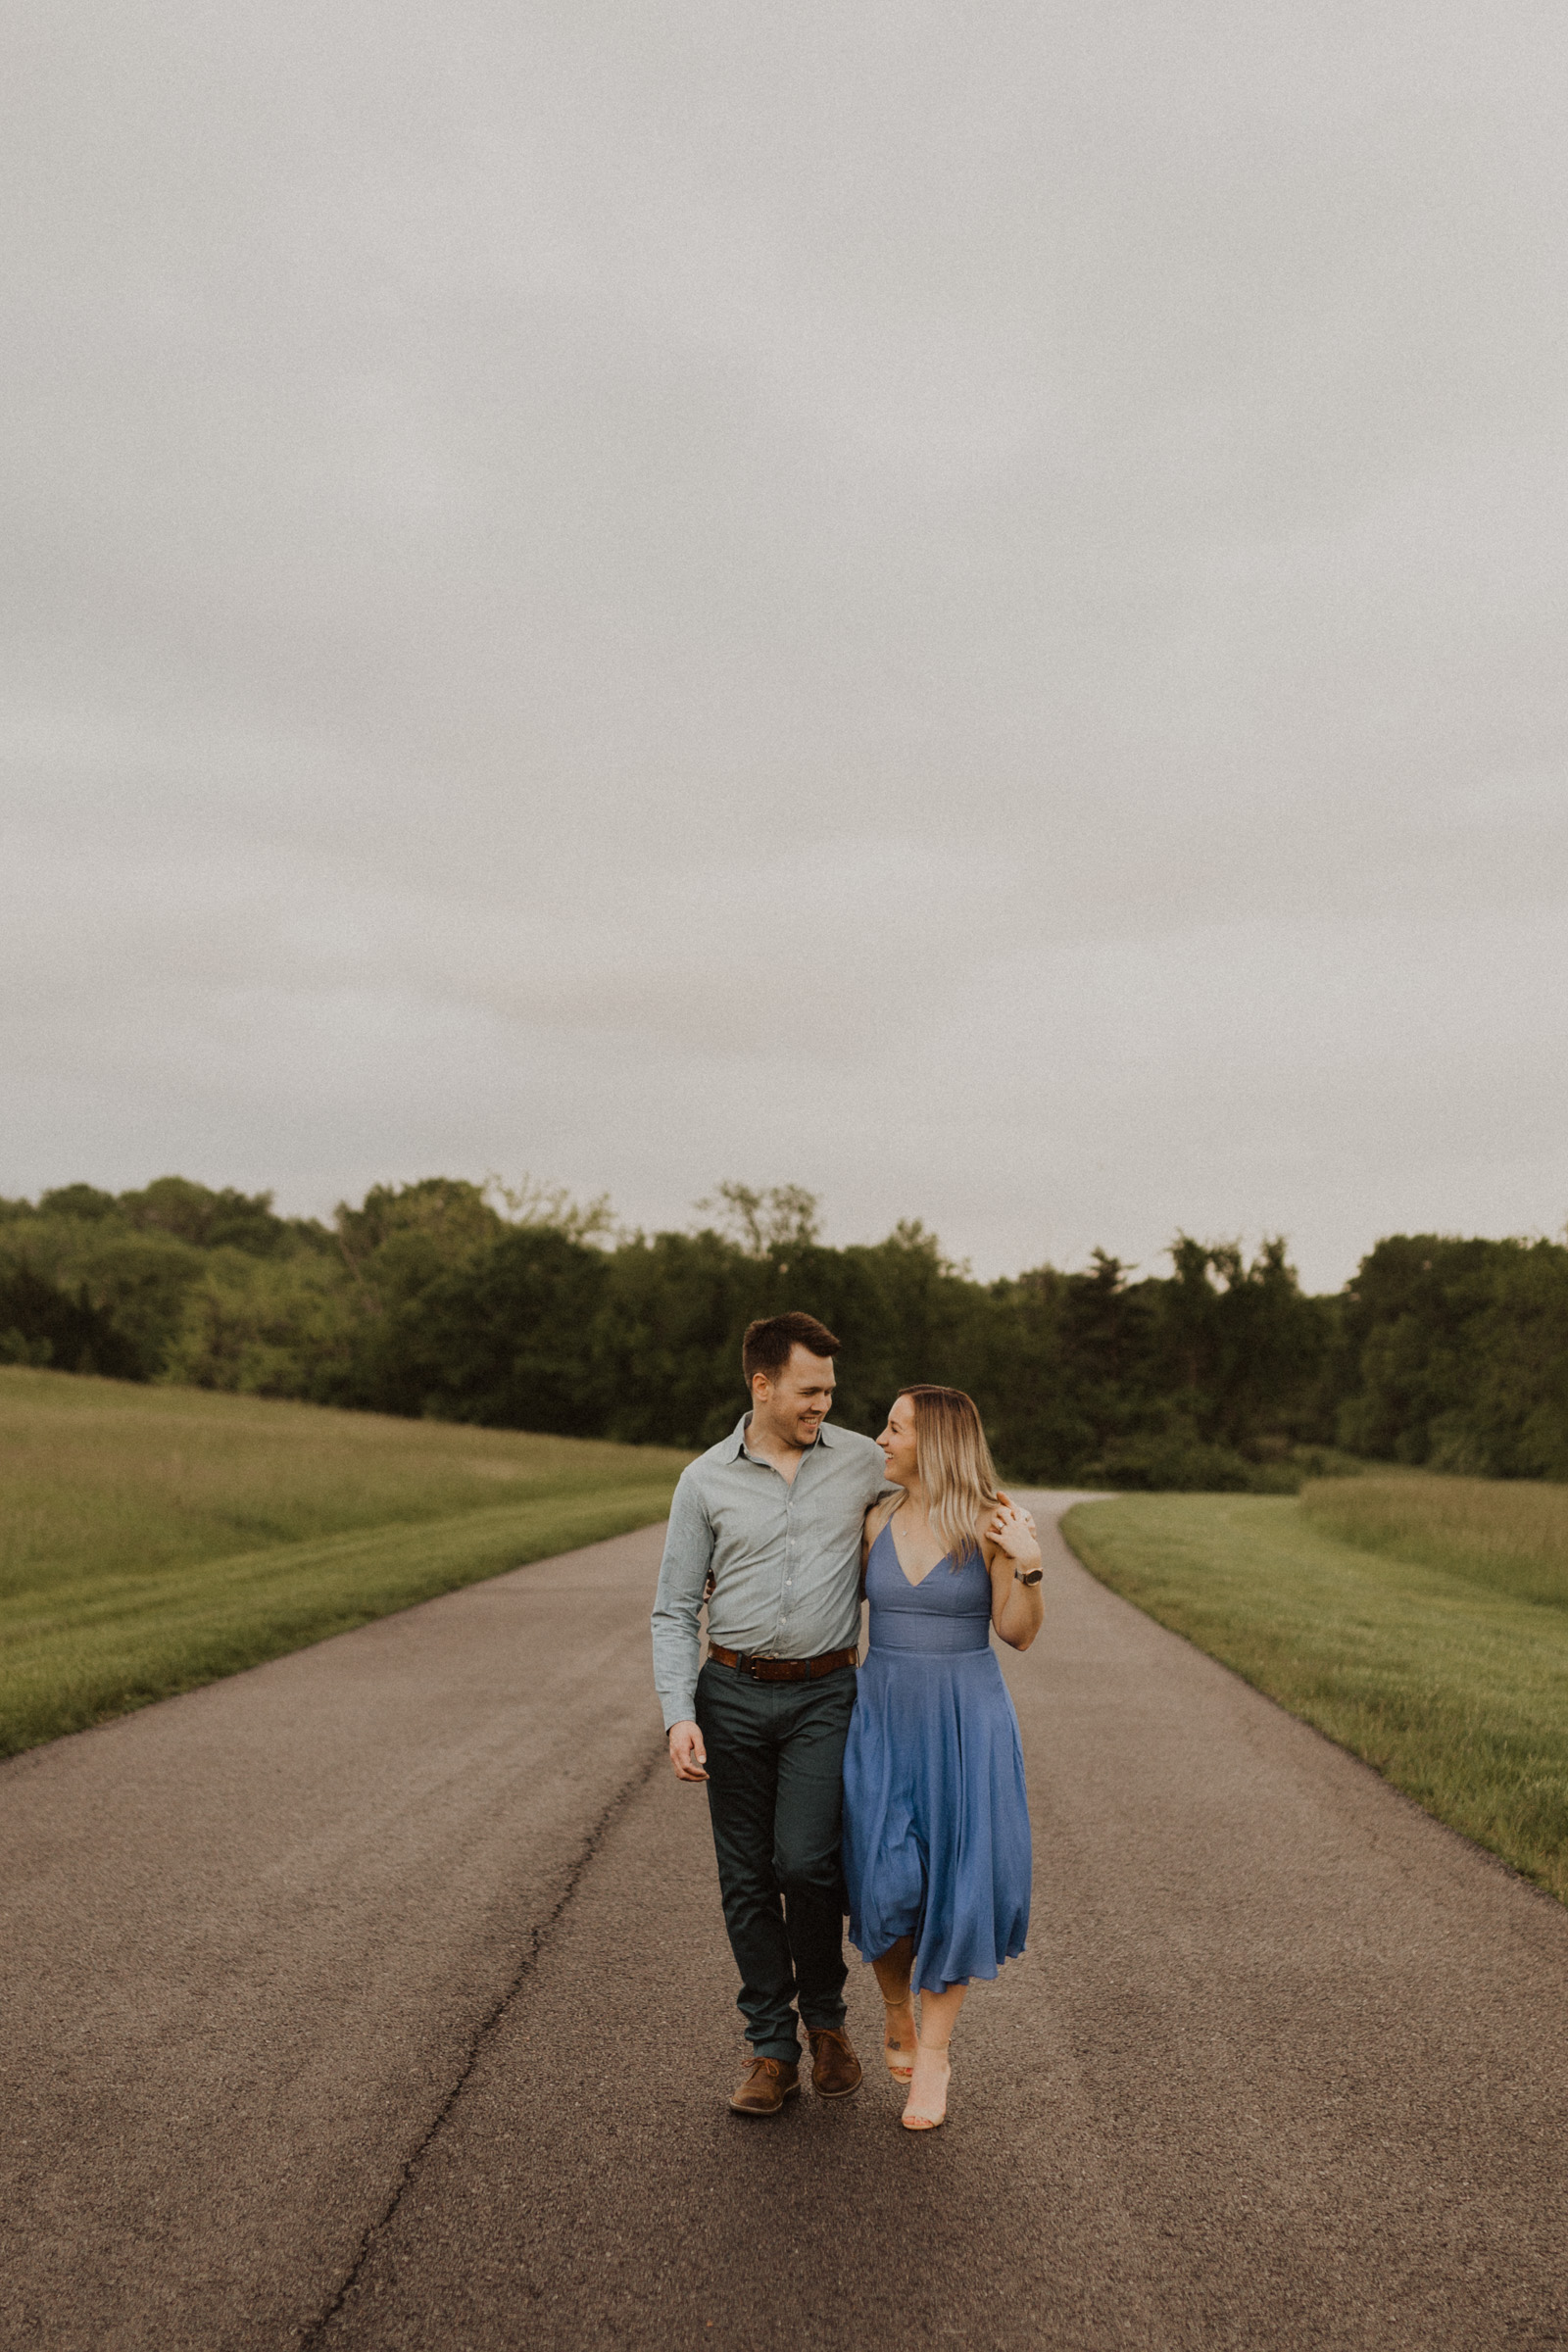 alyssa barletter photography shawnee mission park engagement session photographer sunset-24.jpg